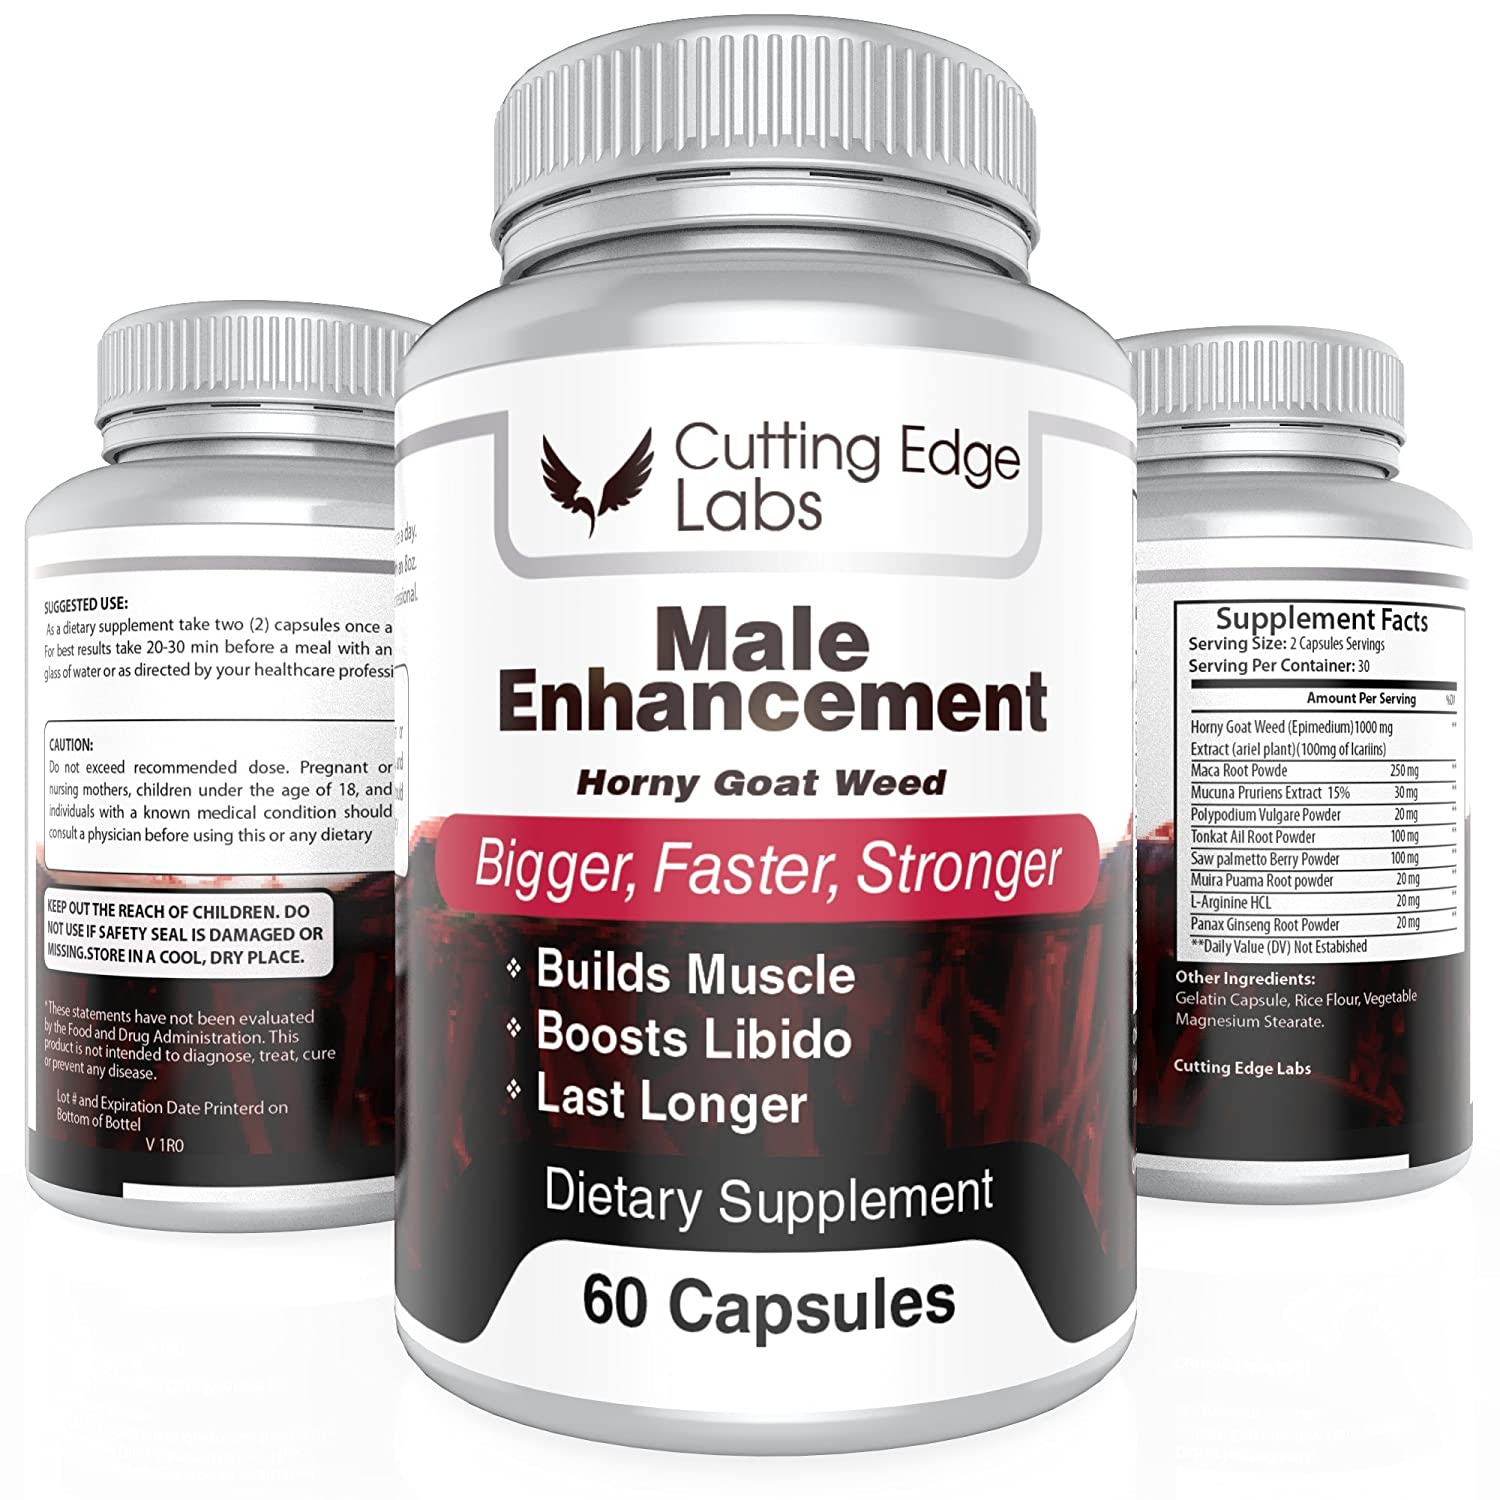 Male Enhancement Supplement with Horny Goat Weed Blend (60 Capsules) – Fortifies Testosterone and Sexual Libido – Supports Muscle, Stamina & Endurance Gains, Natural Weight Loss